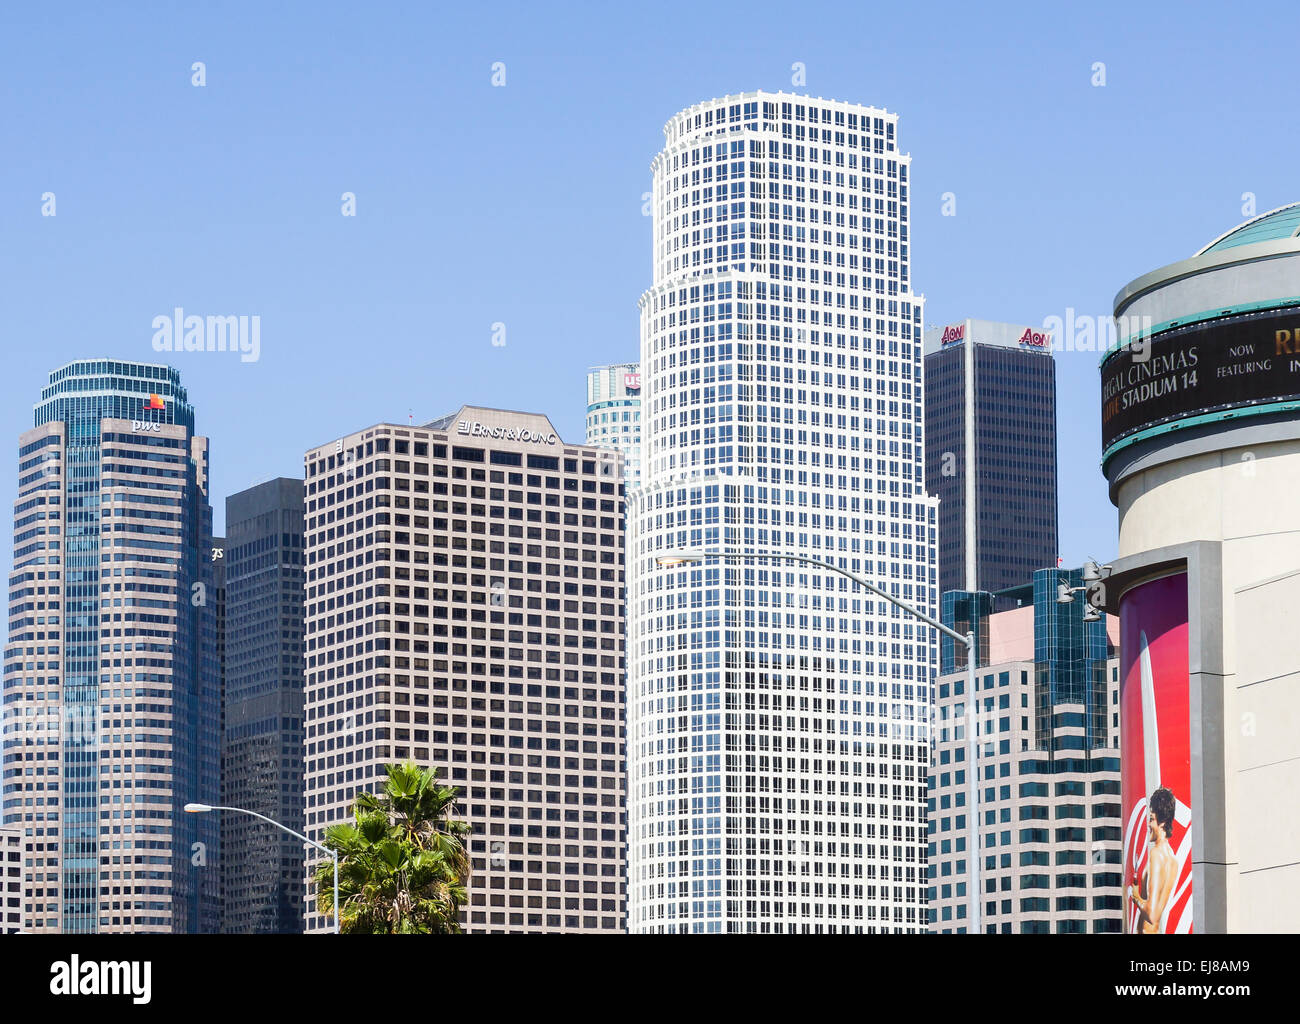 Downtown L.A. - Stock Image